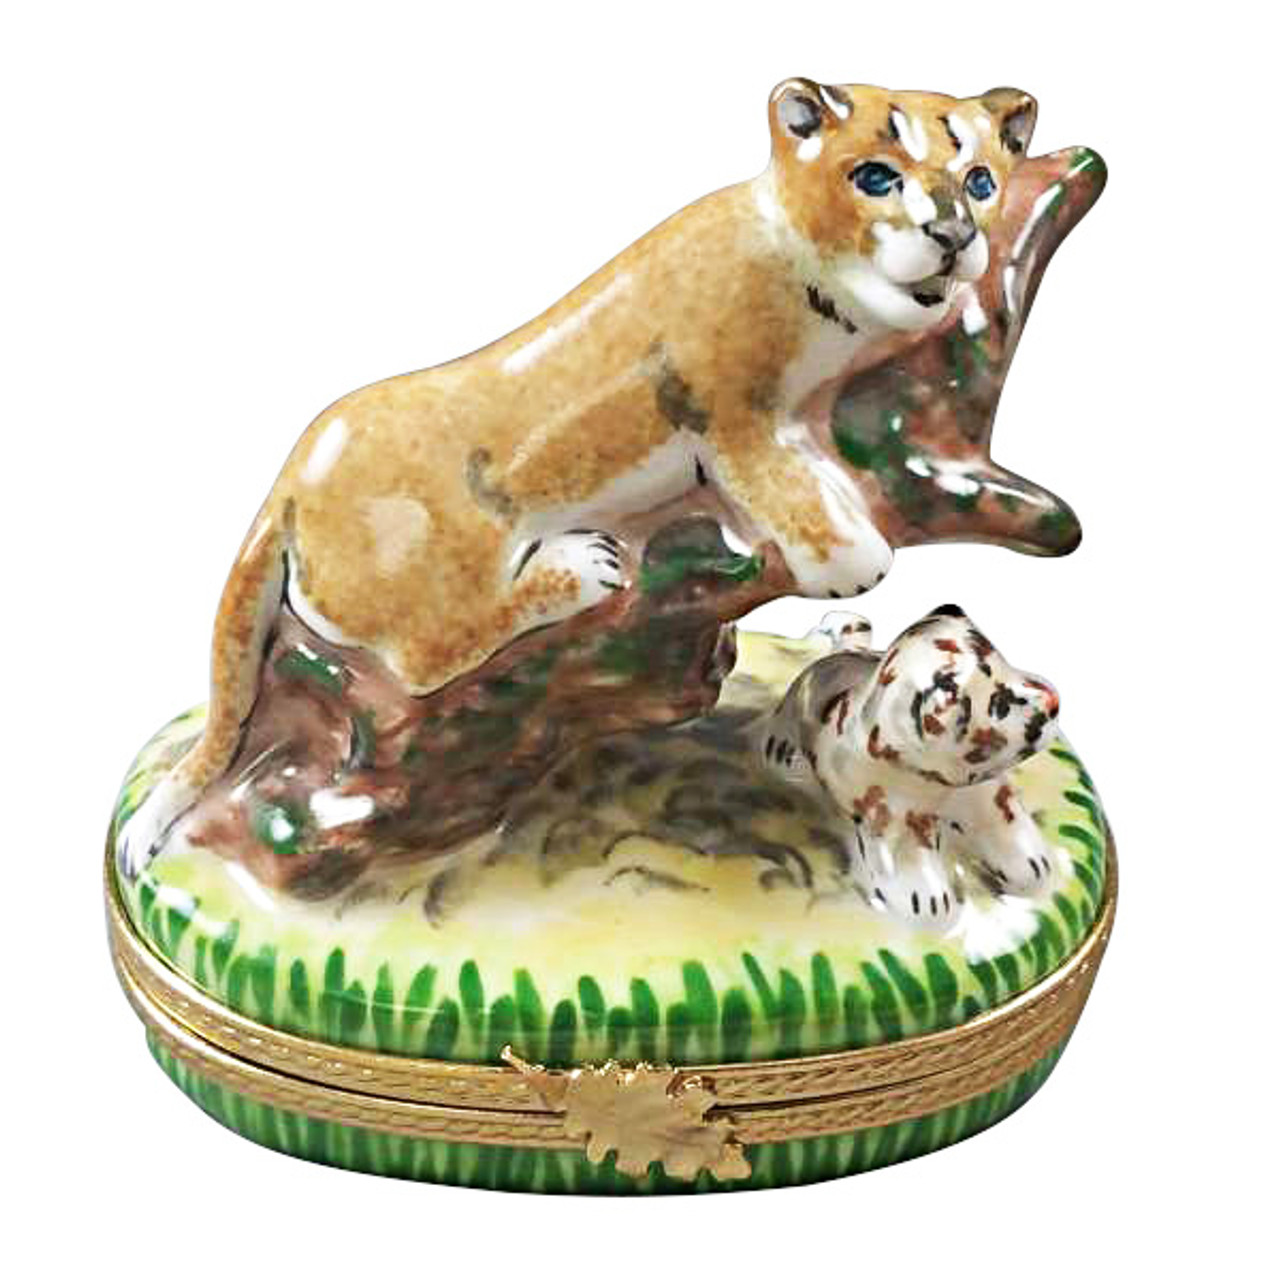 Cougar W/ Baby Rochard Limoges Box